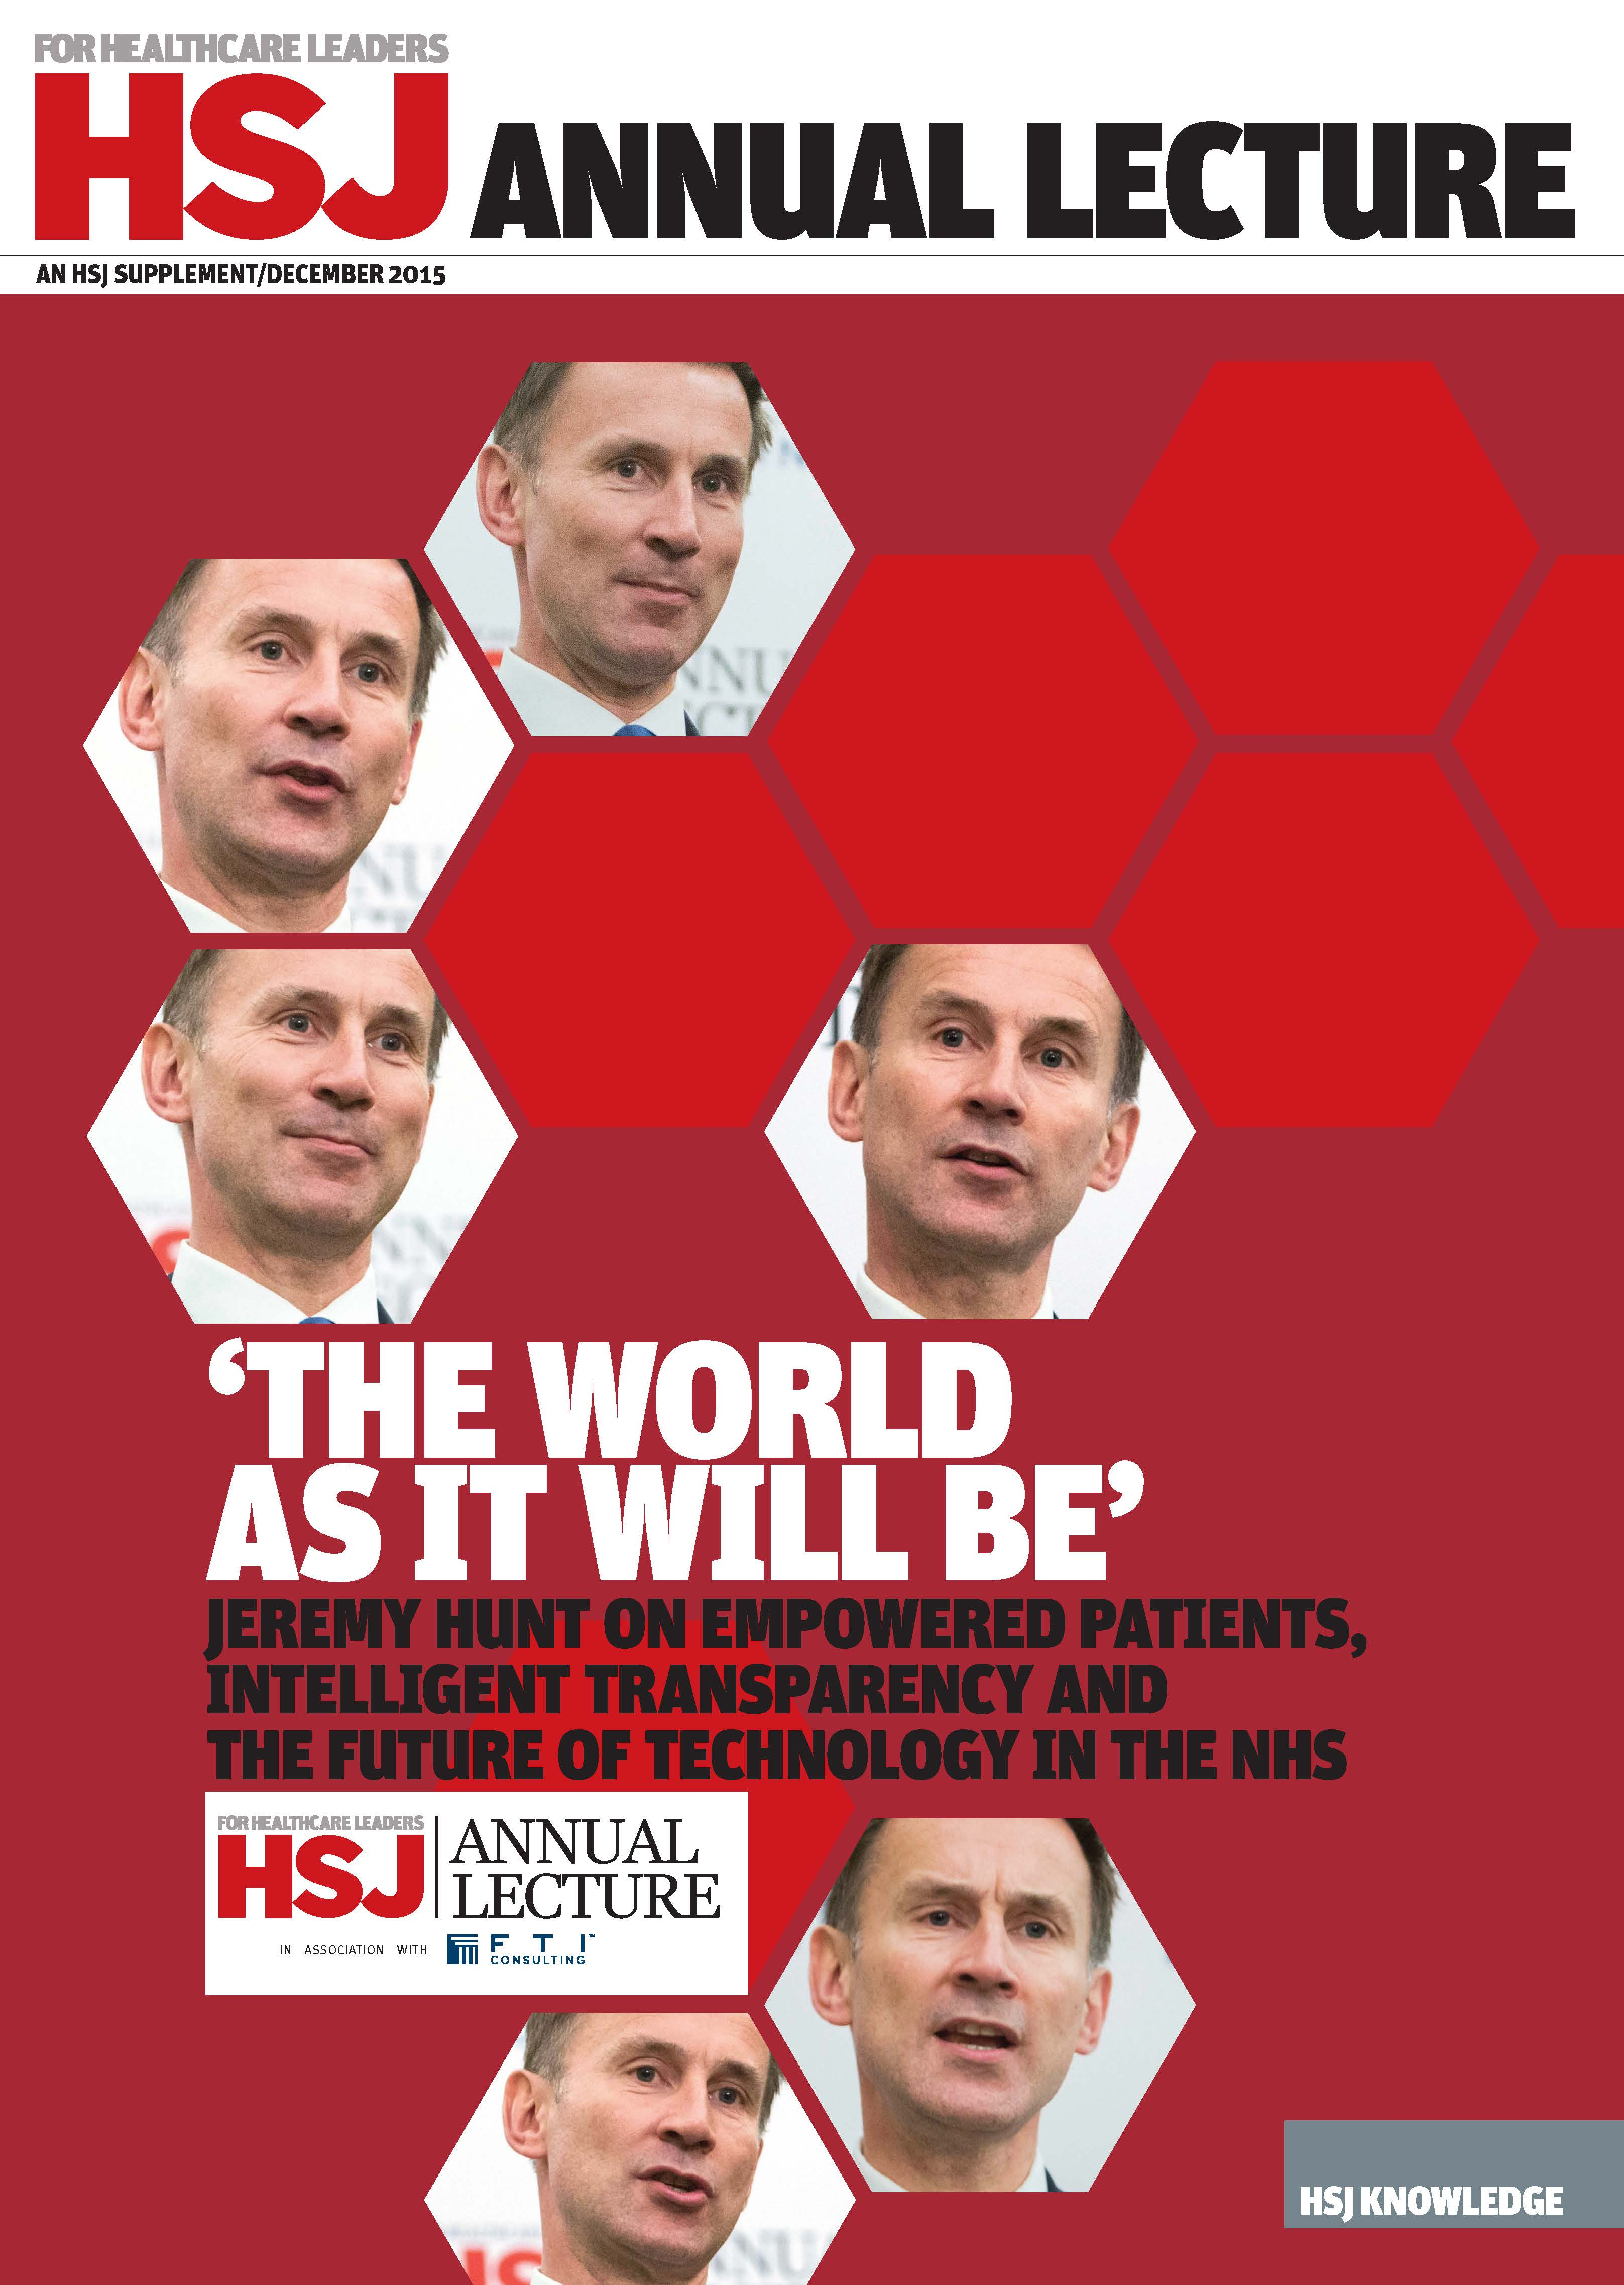 Hsj fti lecture supplement 16 dec 2015